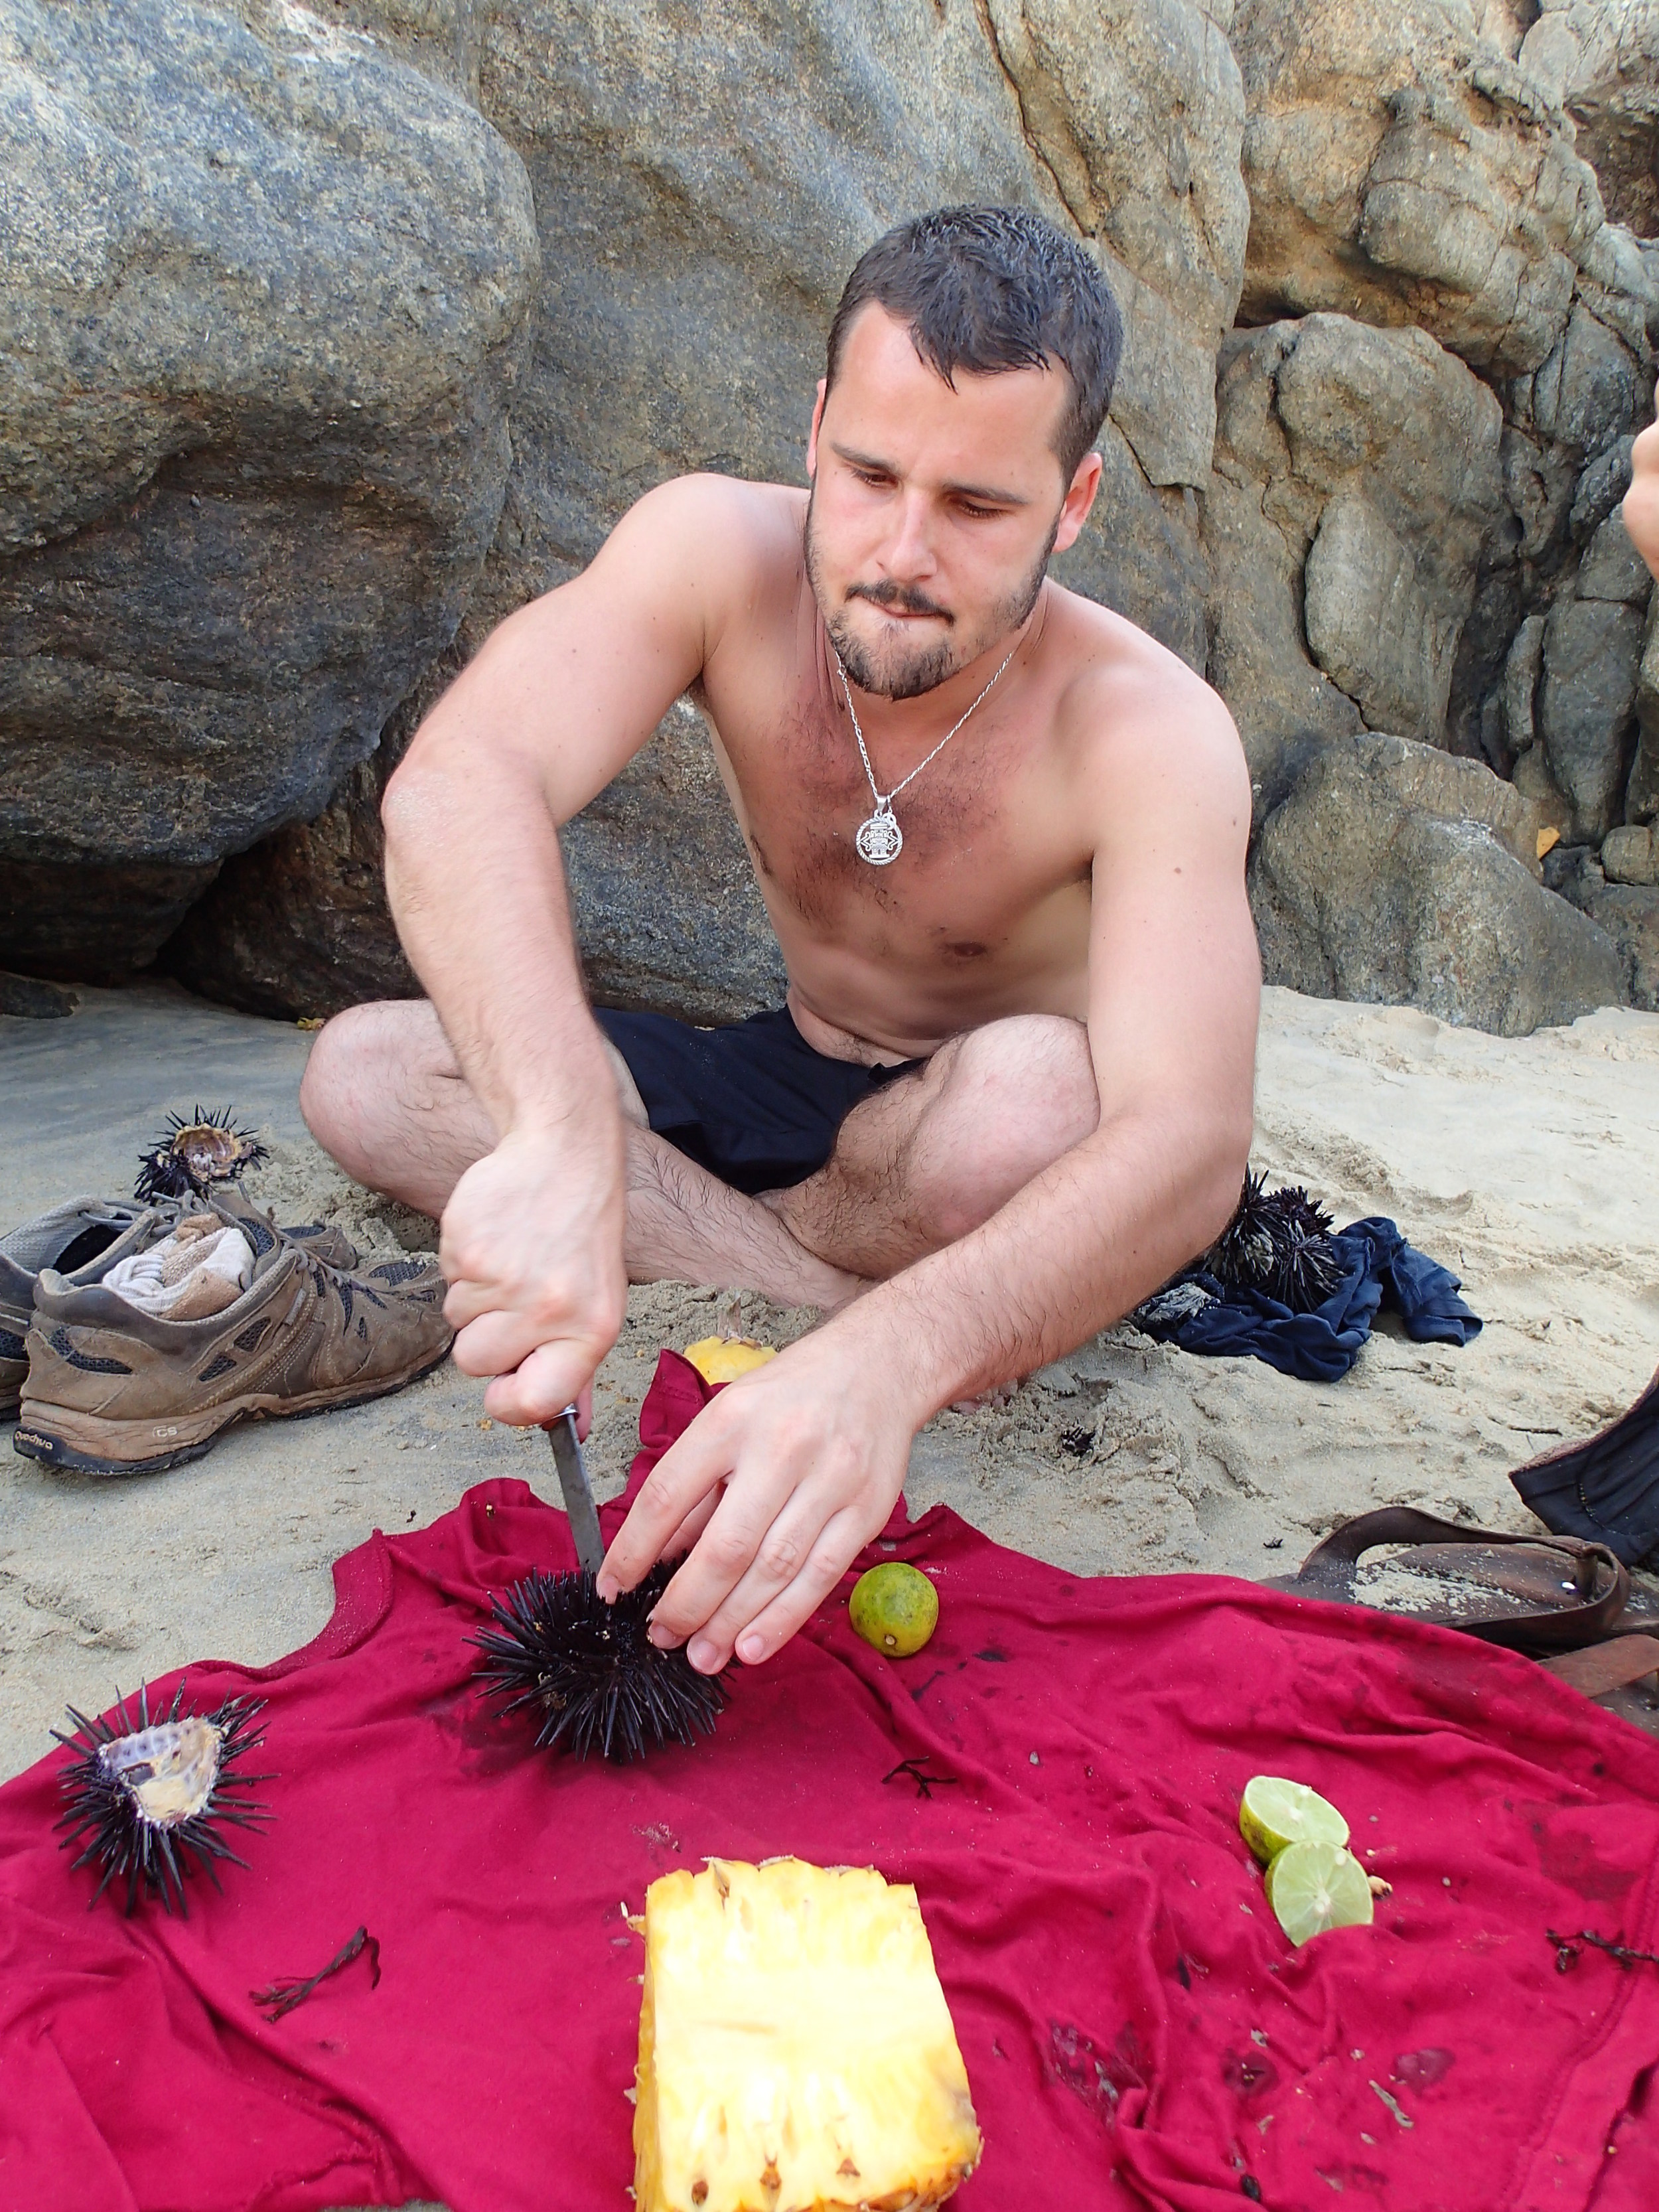 Sea Urchin: an improvised snack on the beach (leave it to a Frenchman...) I preferred the pineapple.